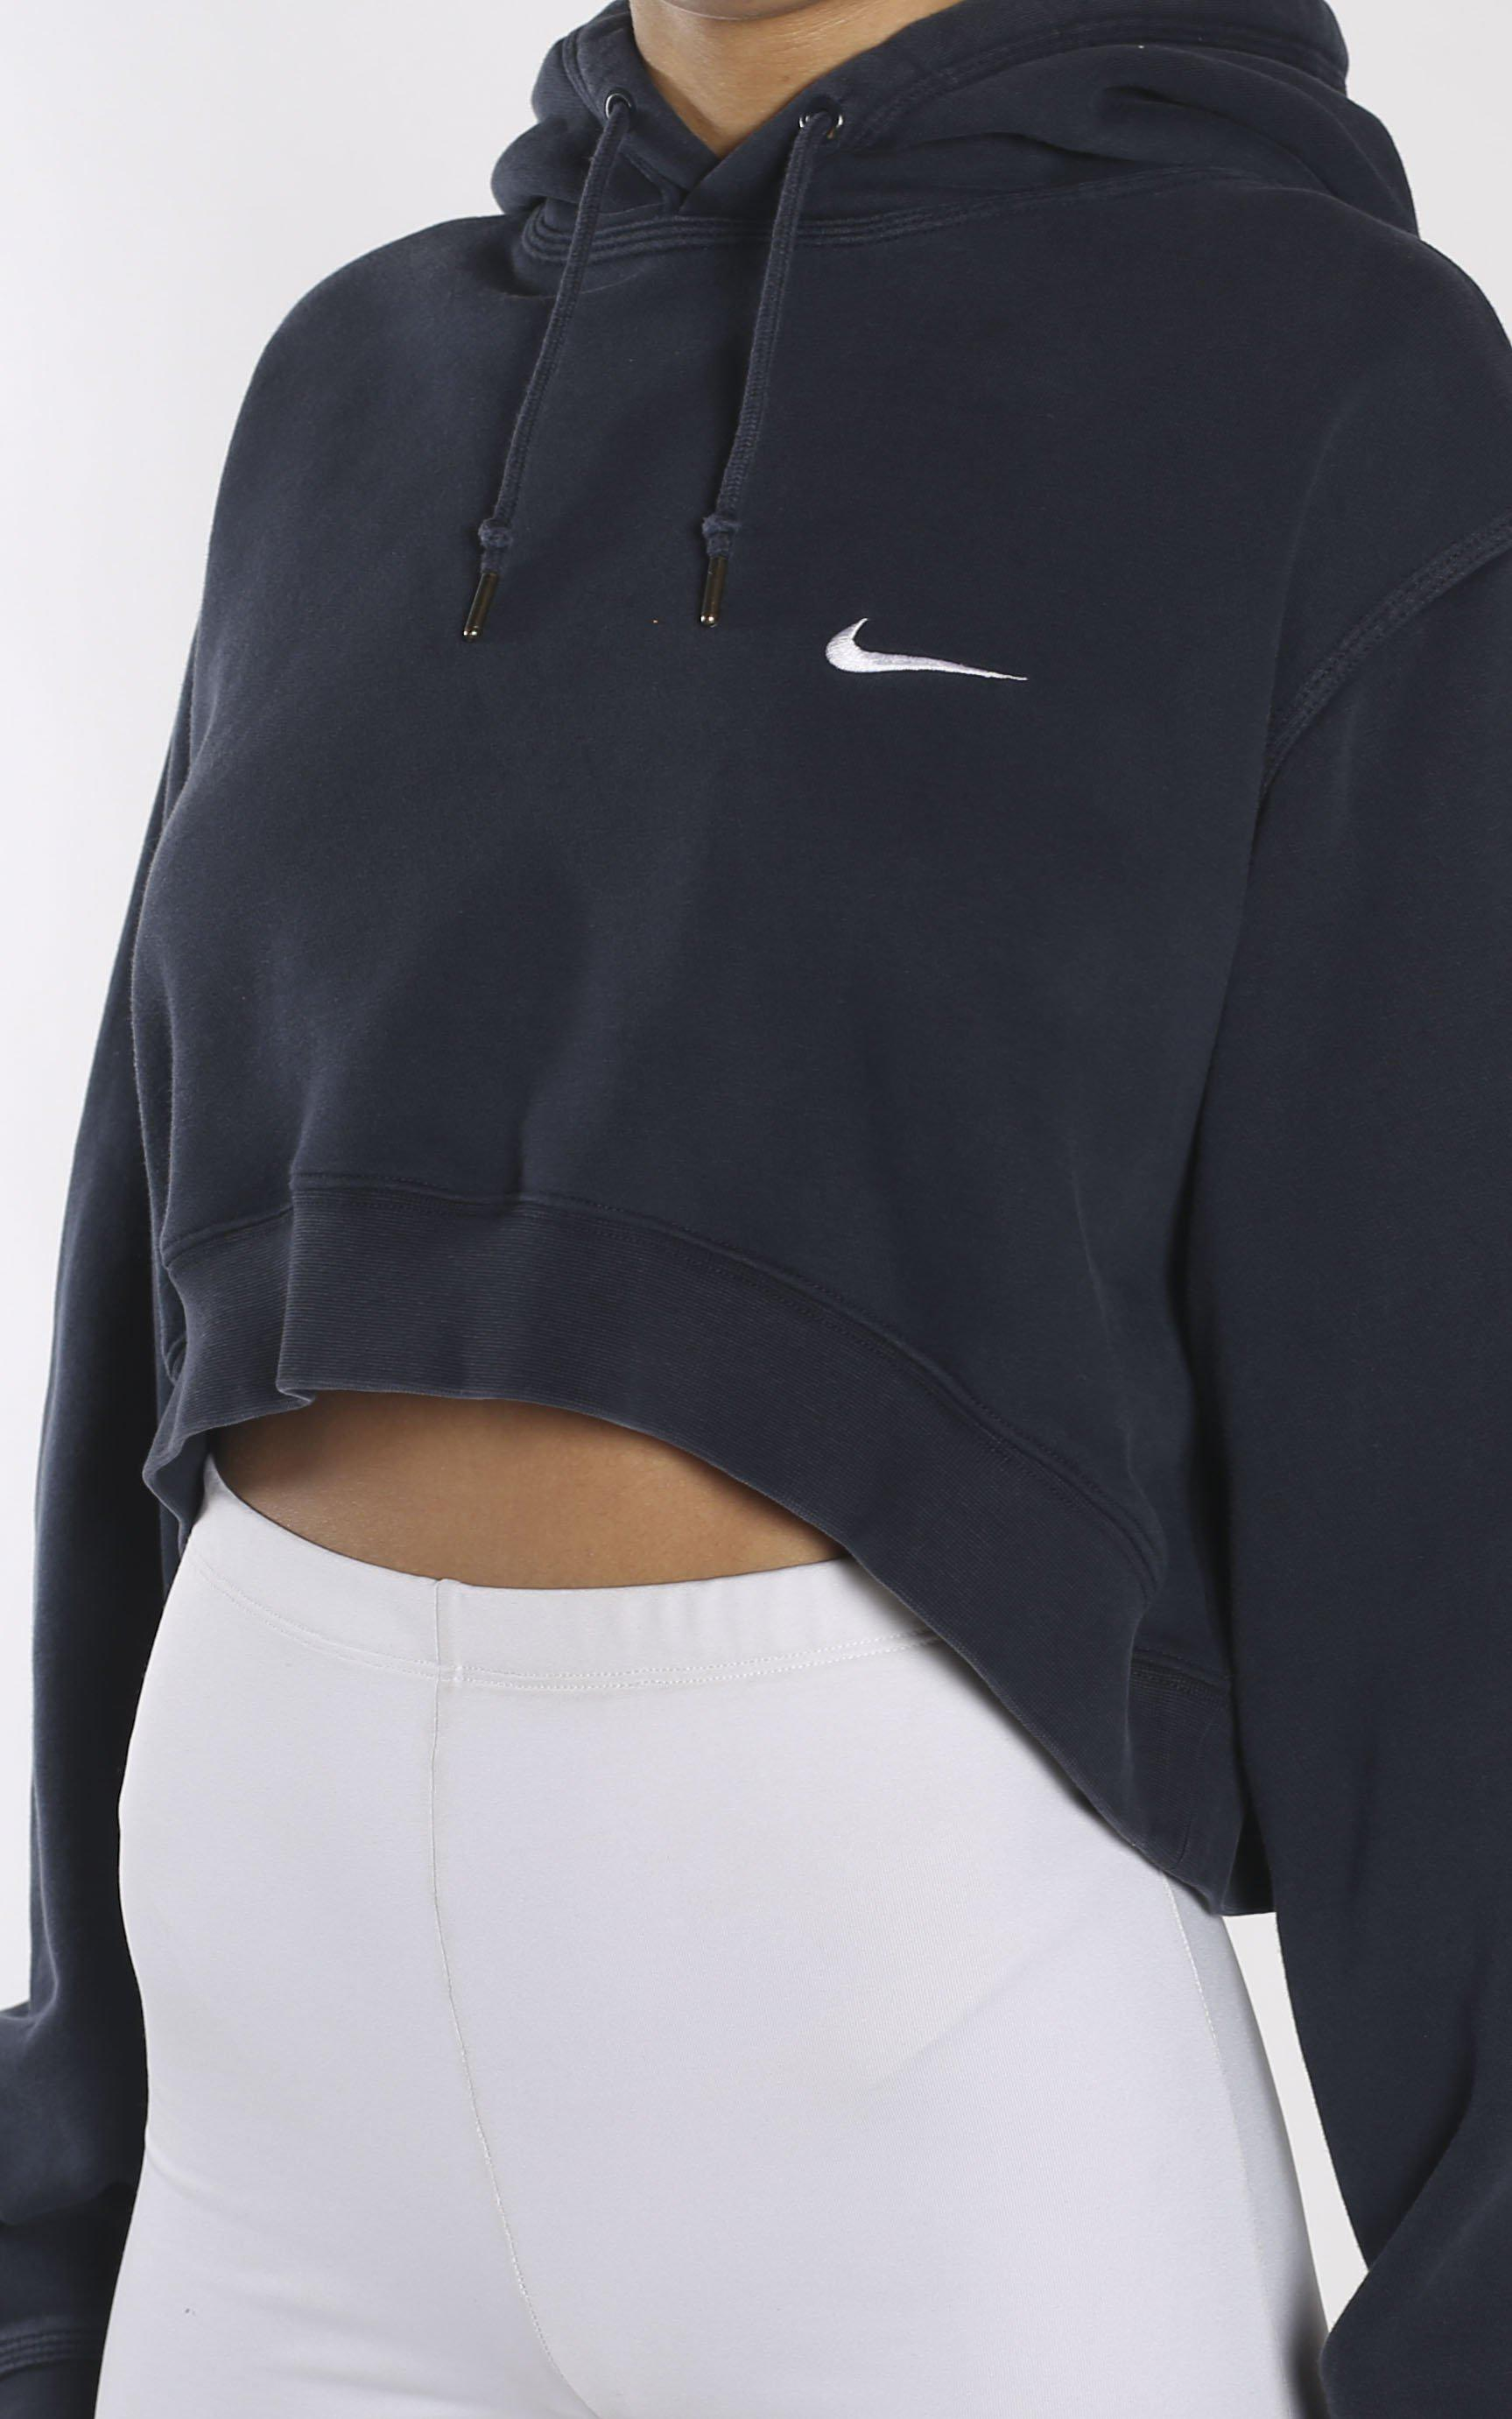 QUEENS | Vintage Reworked Nike Zip Up Crop hoody grey | Nike